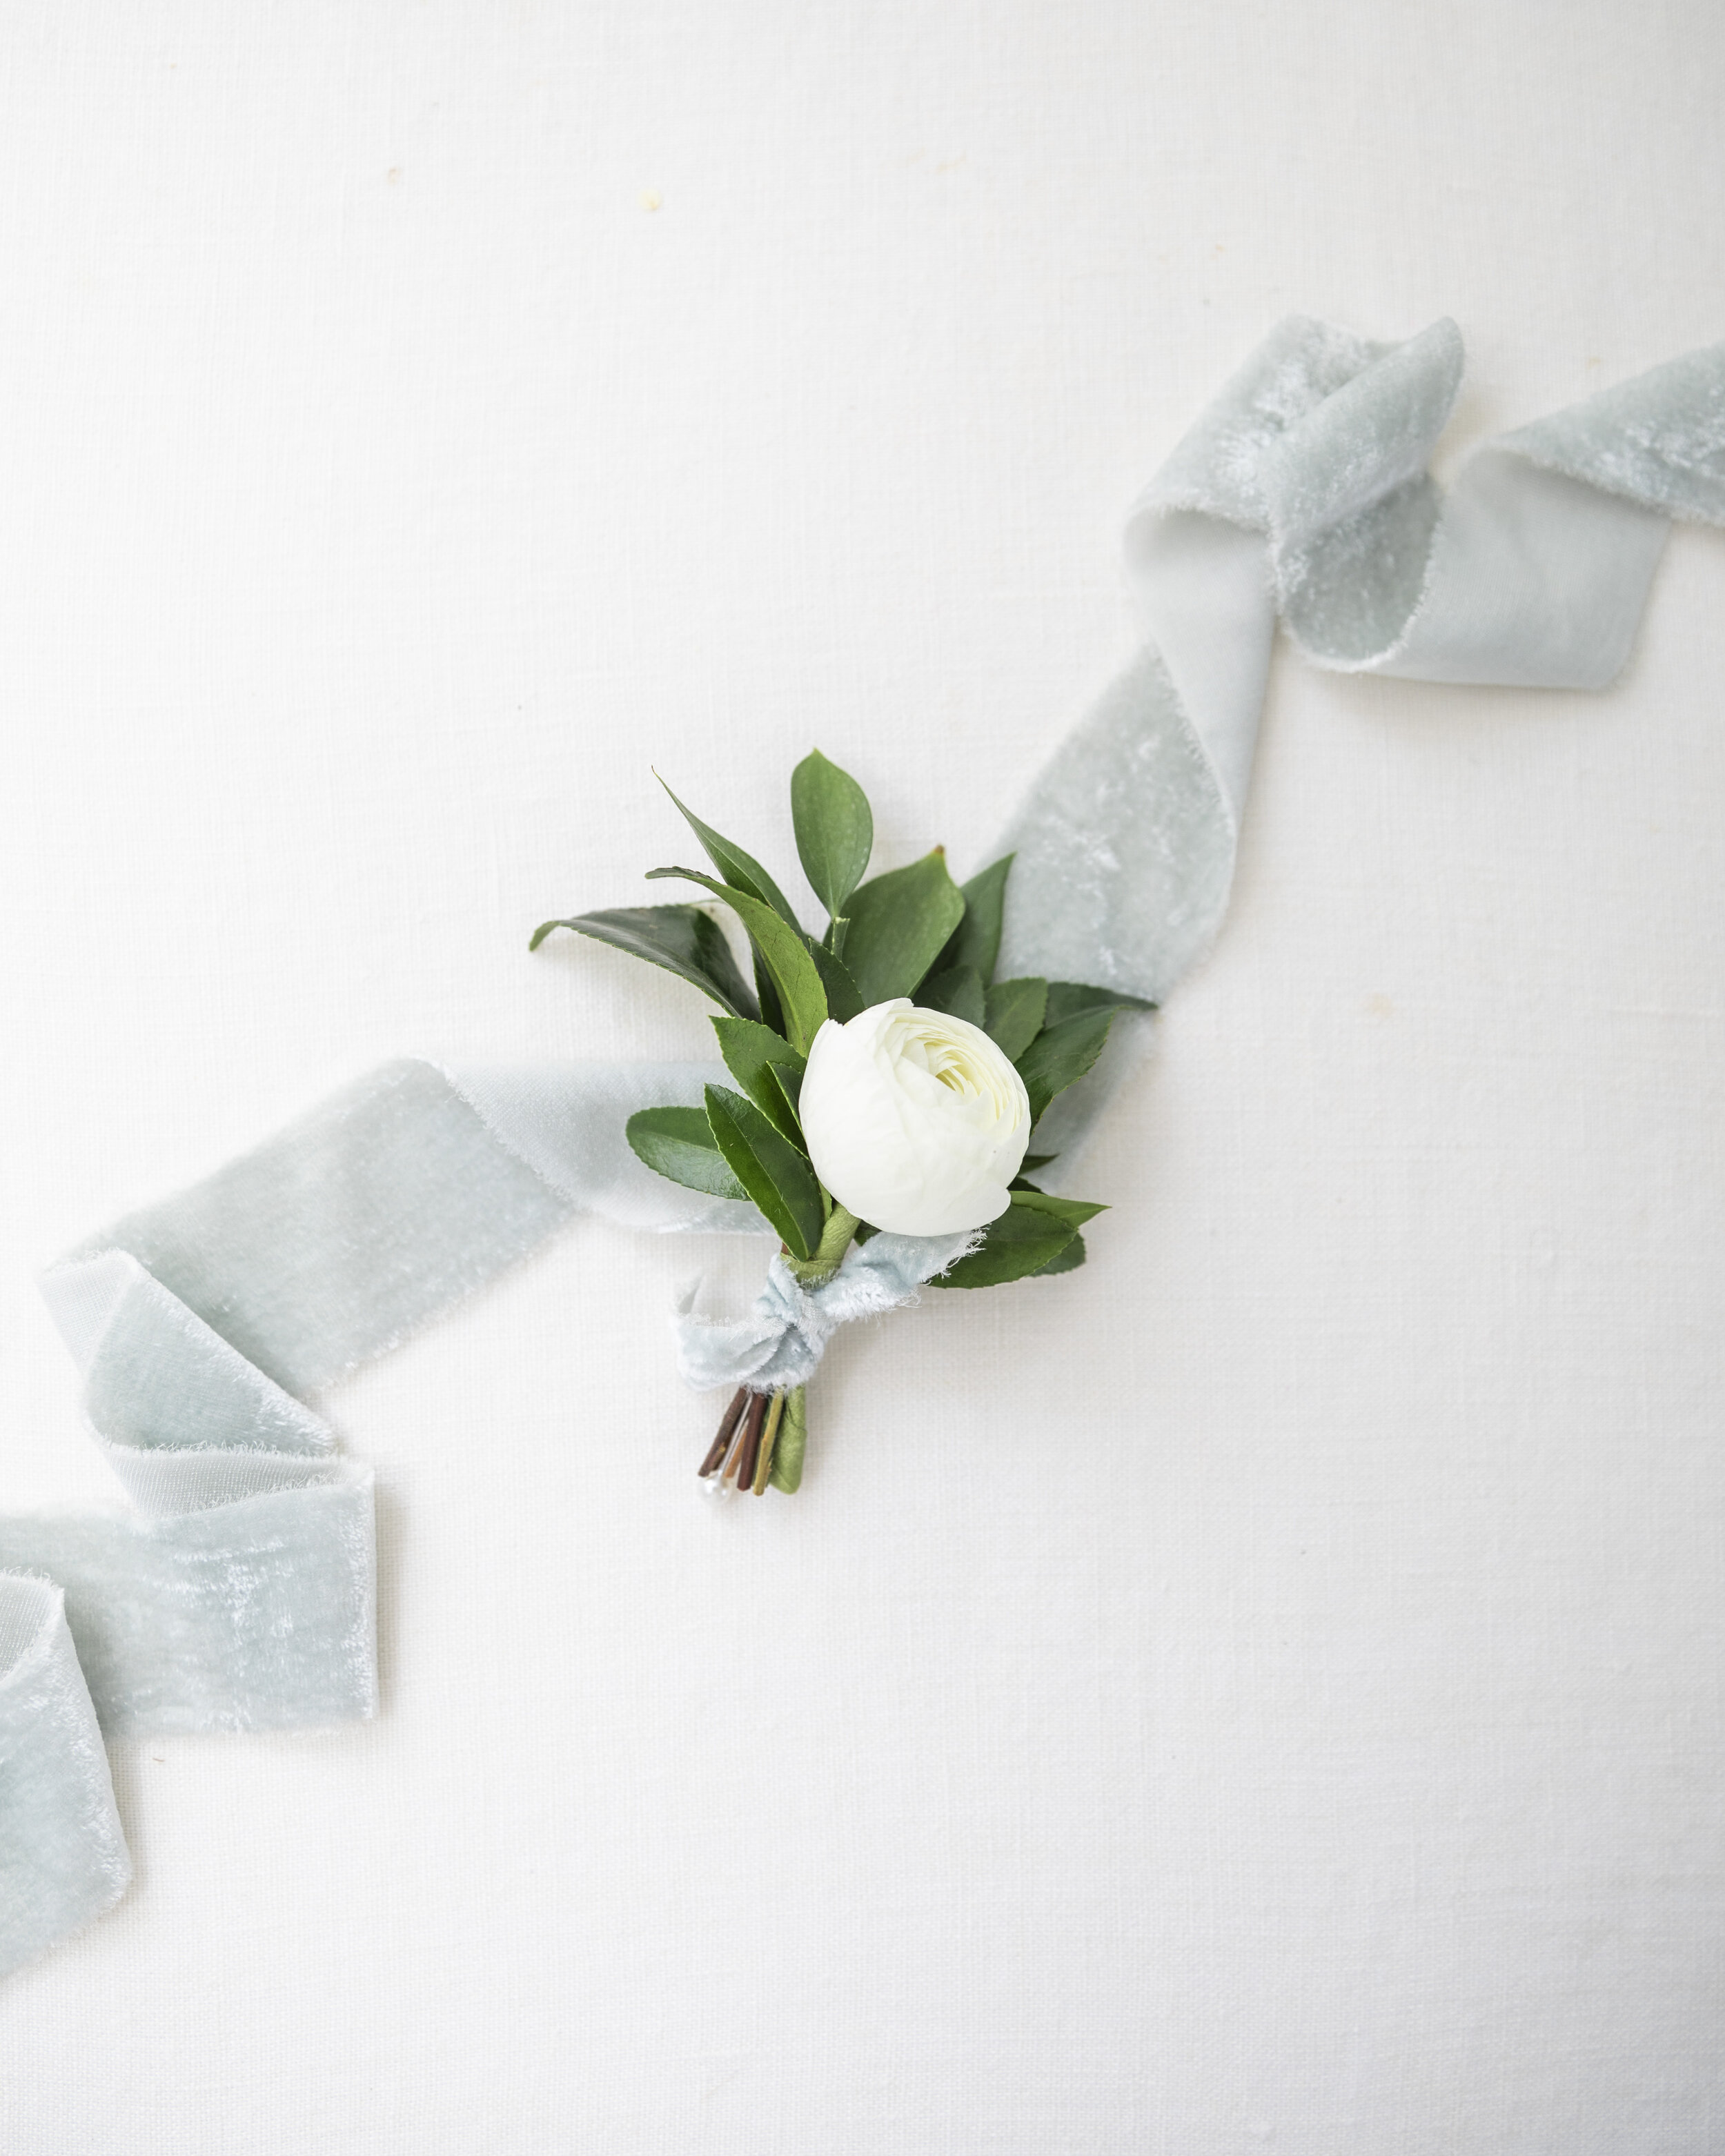 single white flower boutonniere boutonniere inspiration with greenery soft muted blue ribbon single boutinere pose inspiration floral tips and tricks for the utah provo bride bridal floral advise faux flower tips out of the box ideas cheap bouquet ideas professional provo utah florist#utahflorist #weddingplanning #claritylane #weddingbouquetinspiration #weddingflorals #softbrightlighting #provoutahflorist #provoutah #weddinginspo #provoweddingphotorapher